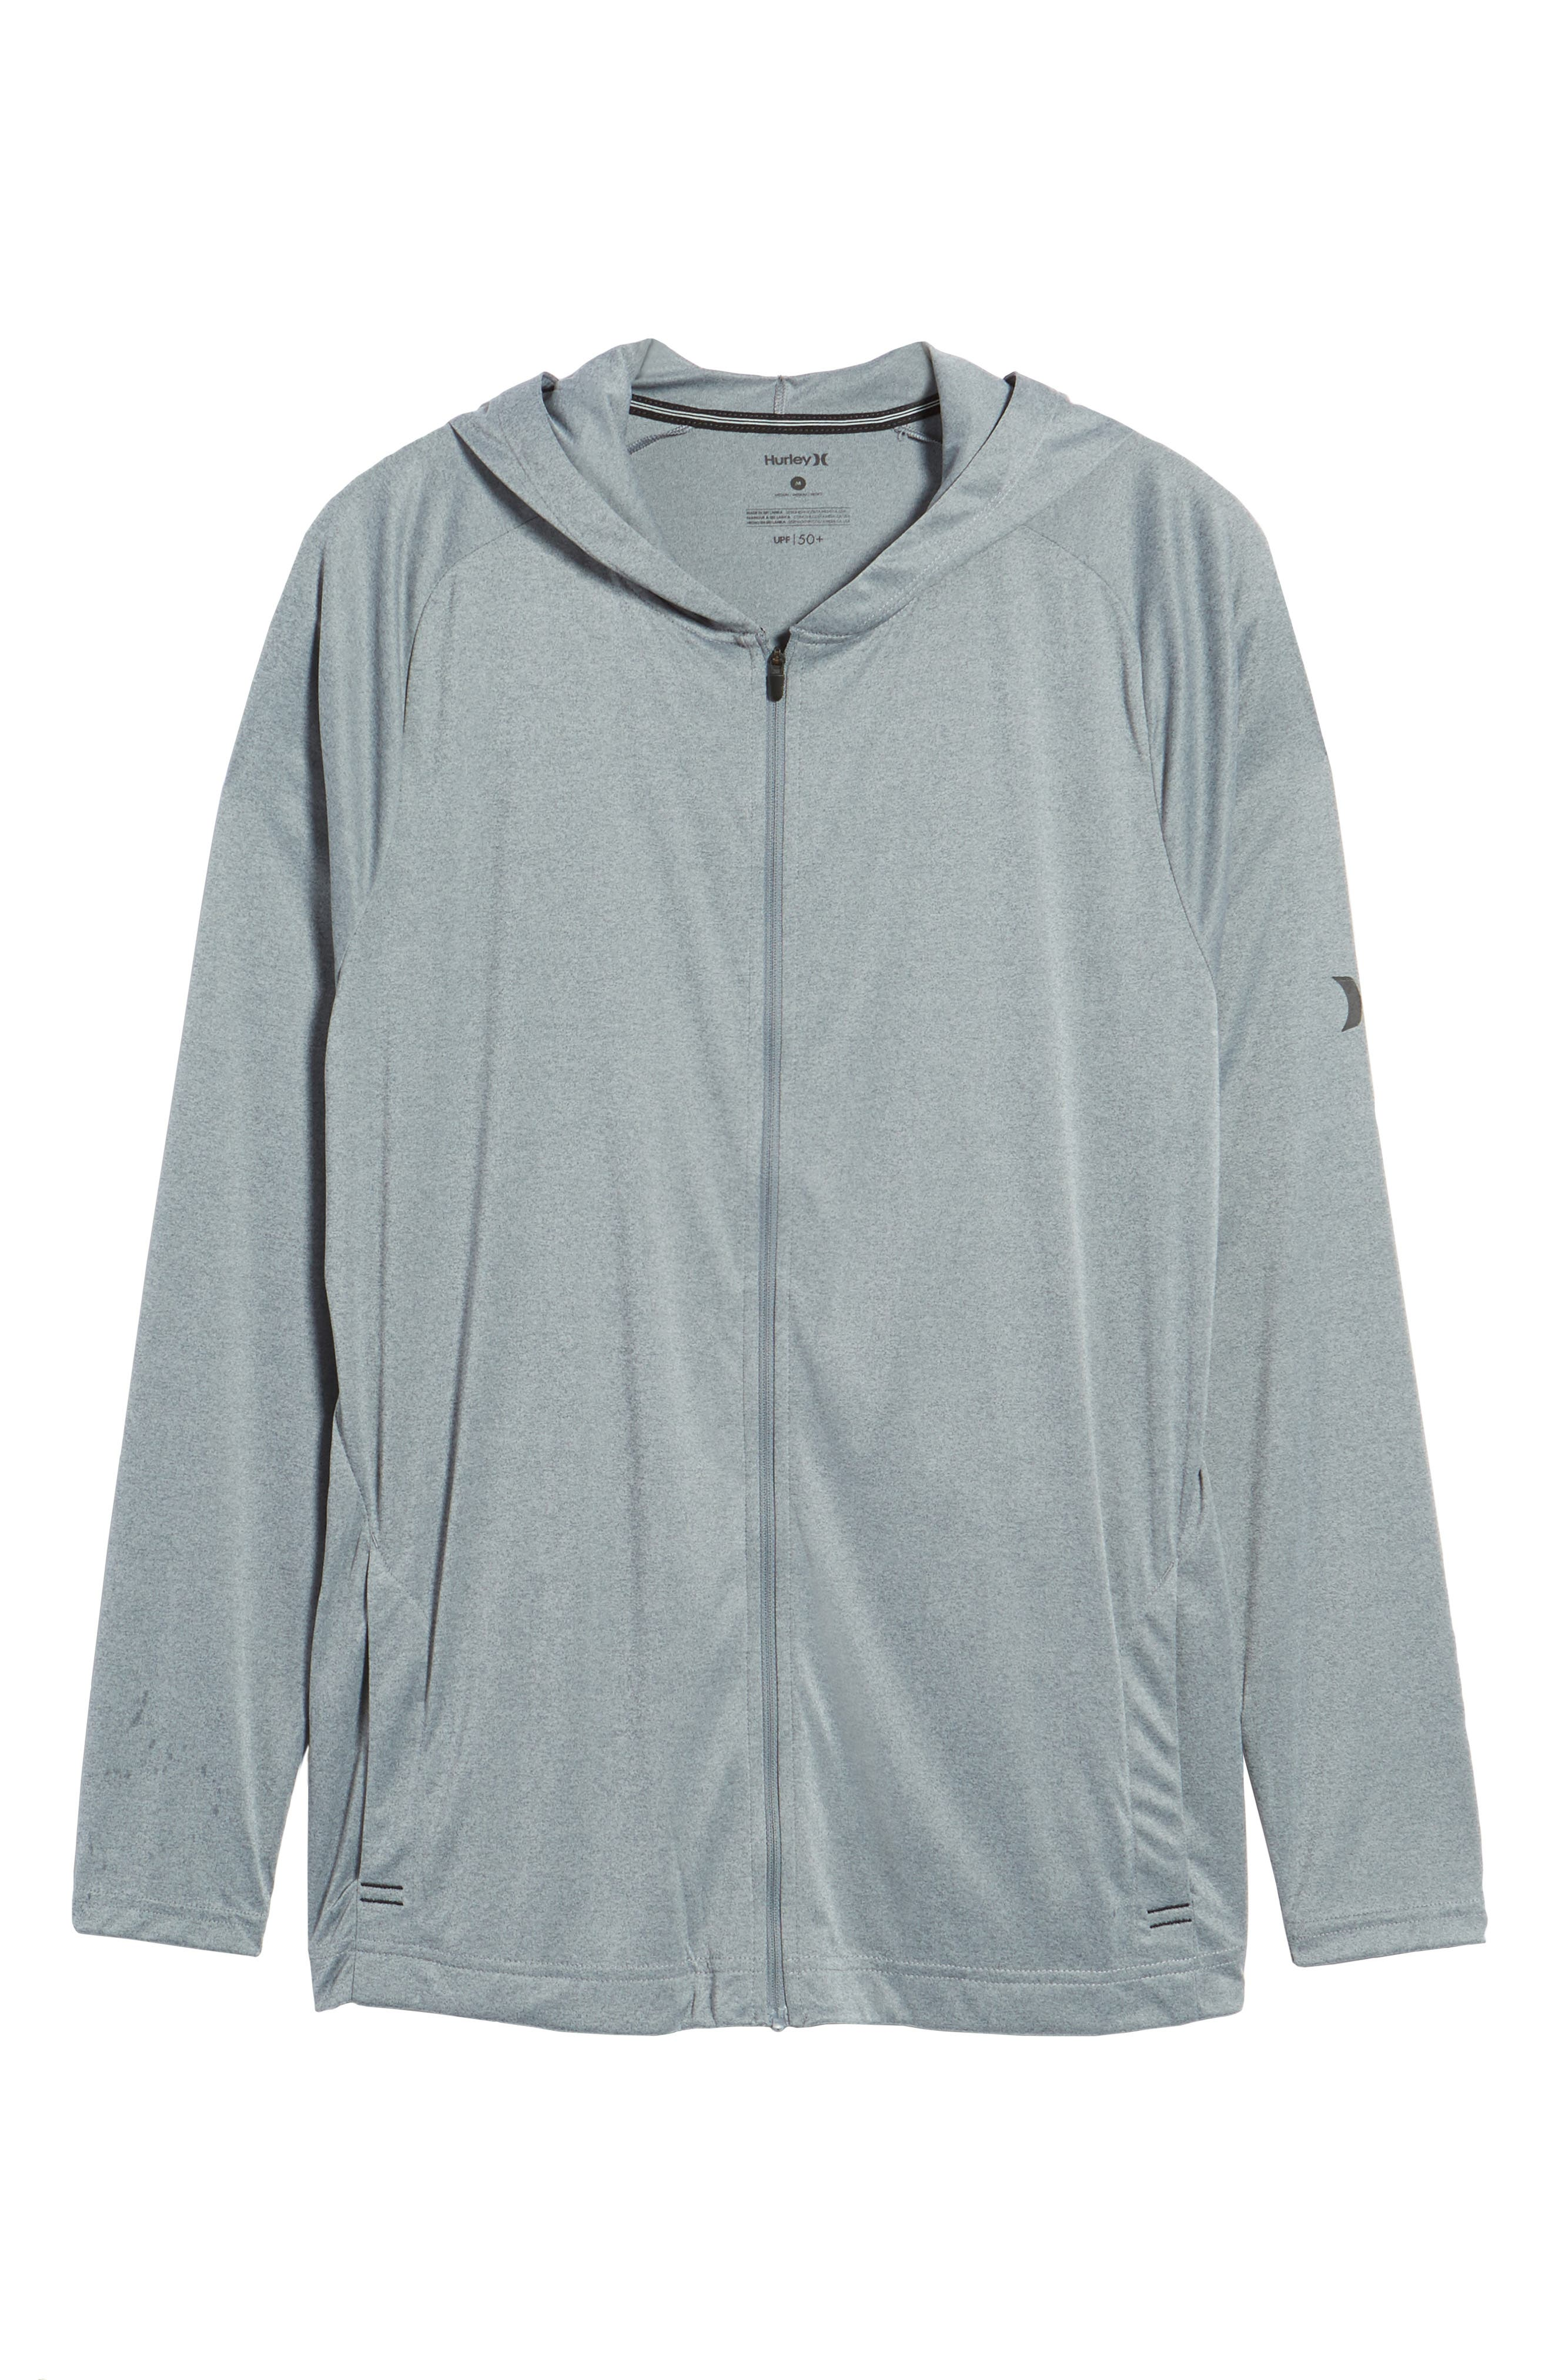 Icon Quick Dry Zip Hoodie,                             Alternate thumbnail 6, color,                             066